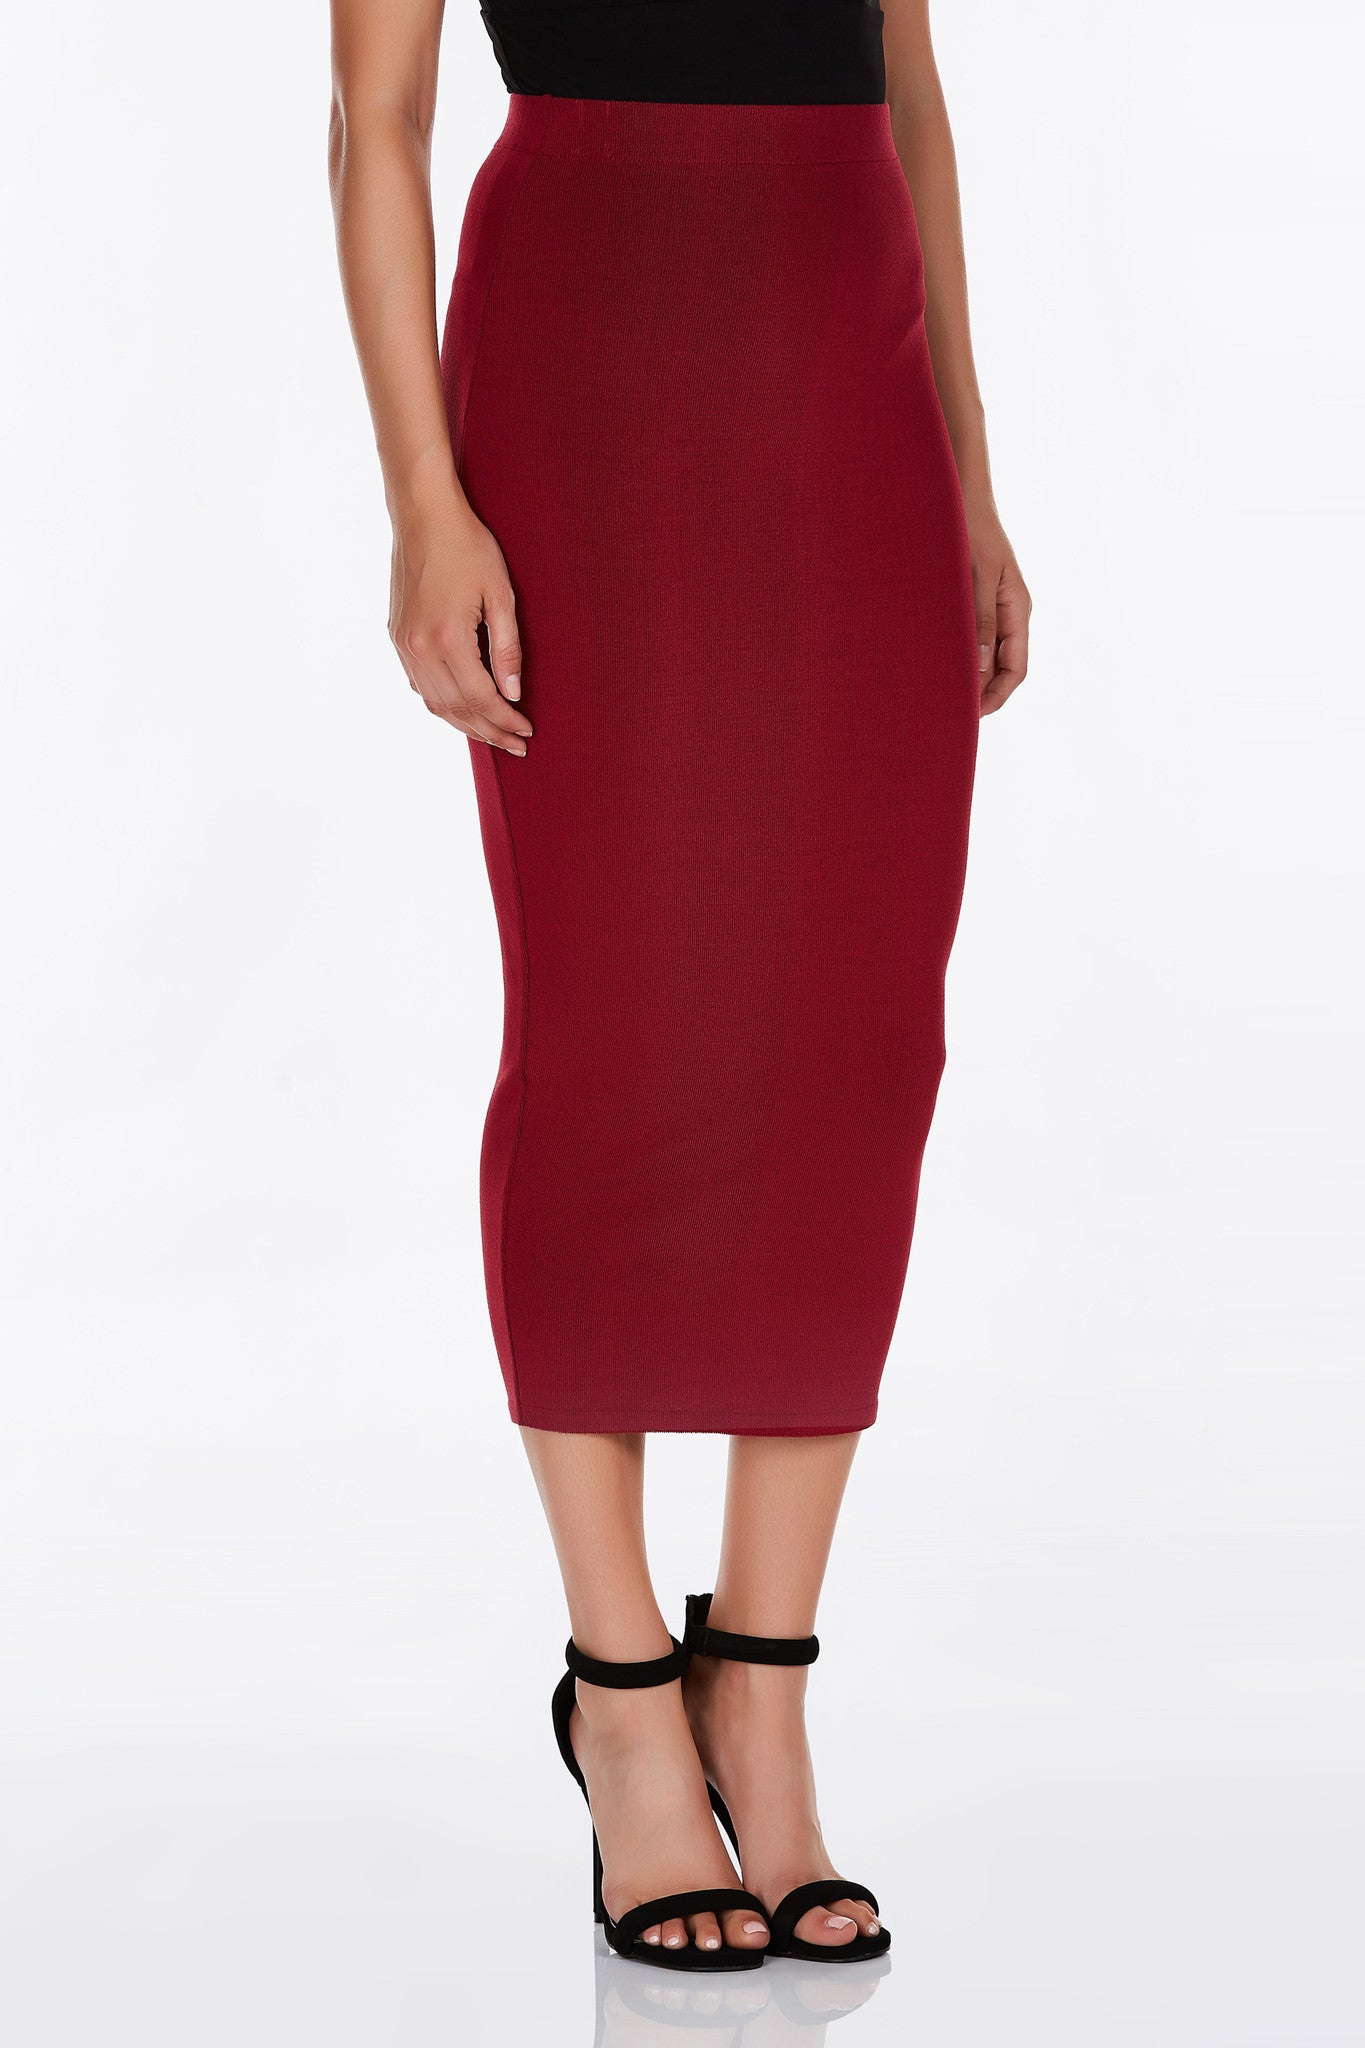 Body hugging maxi skirt offers a Kardashian-esque sexy appeal. High waisted with a hem that cuts right at the lower shin--perfect for showcasing some strappy, lace-up shoes.